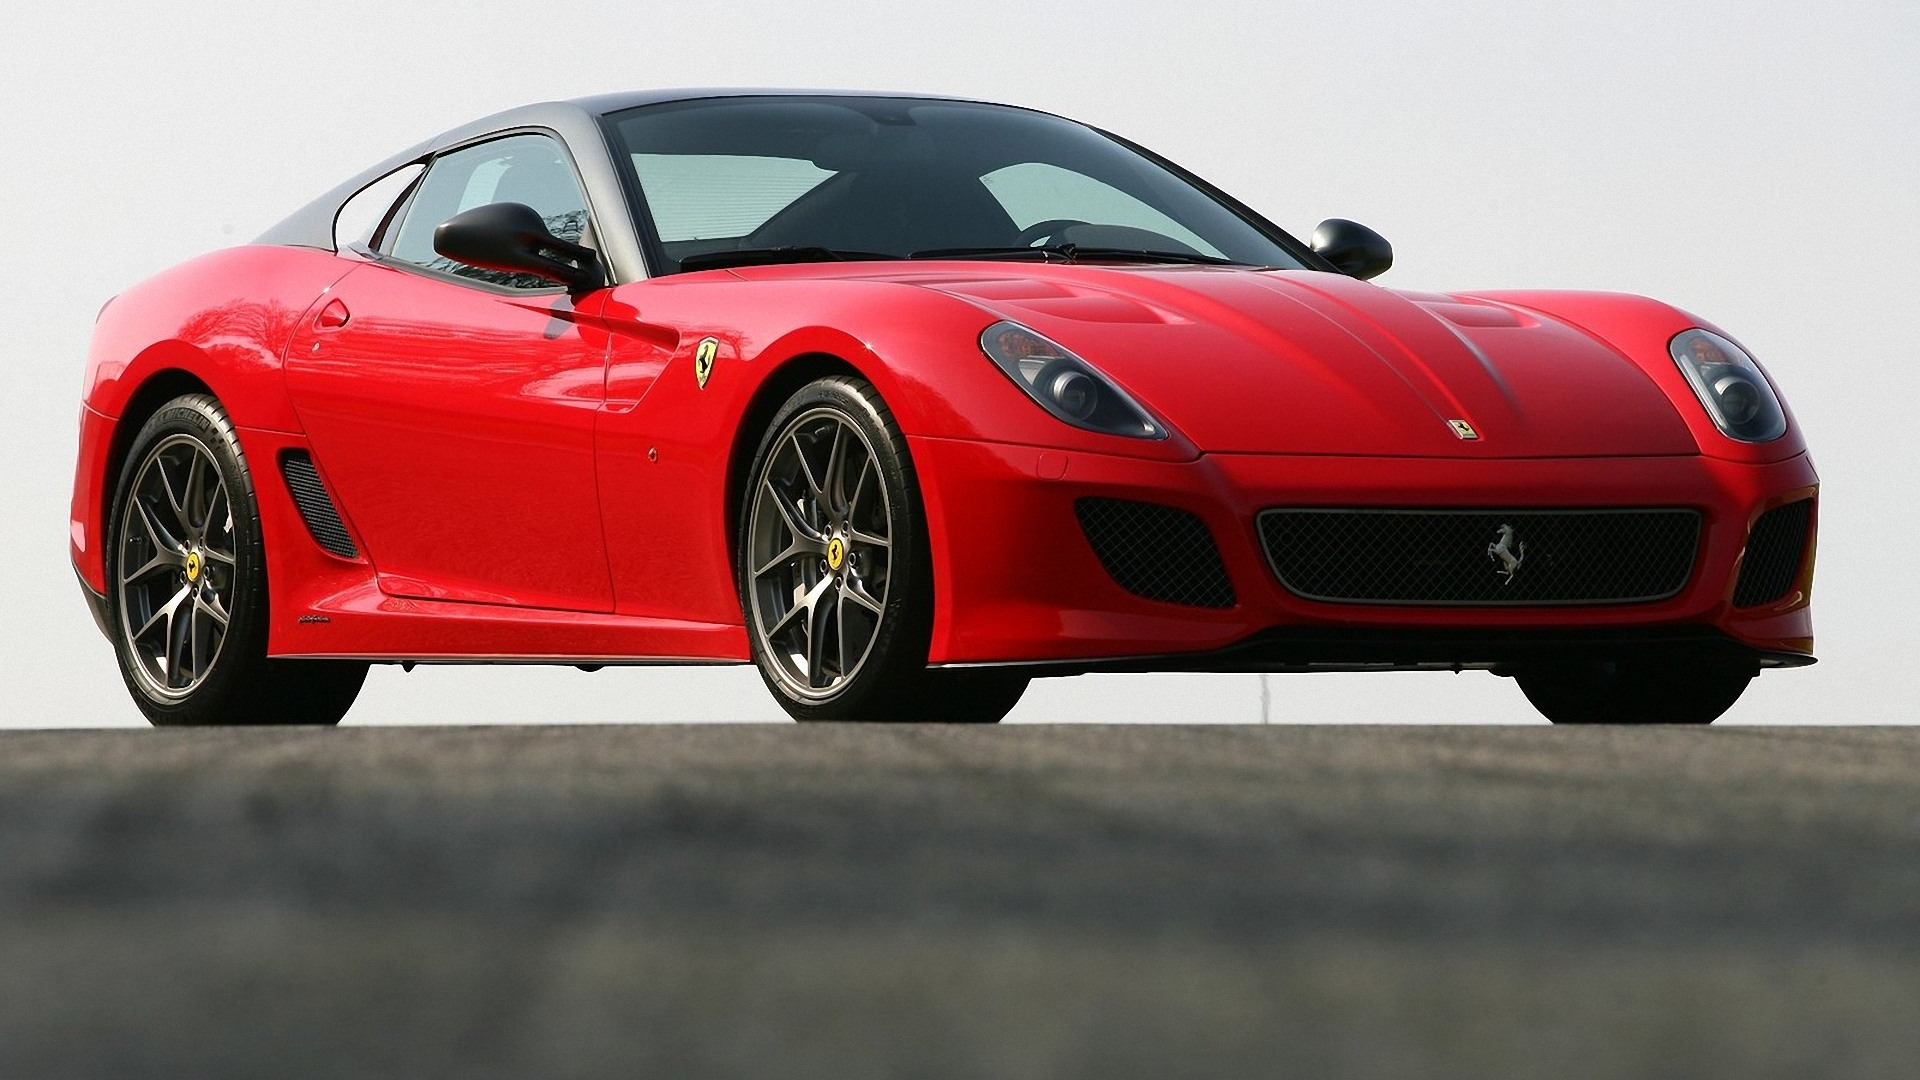 2015 Ferrari 599 GTO Wallpaper Full HD